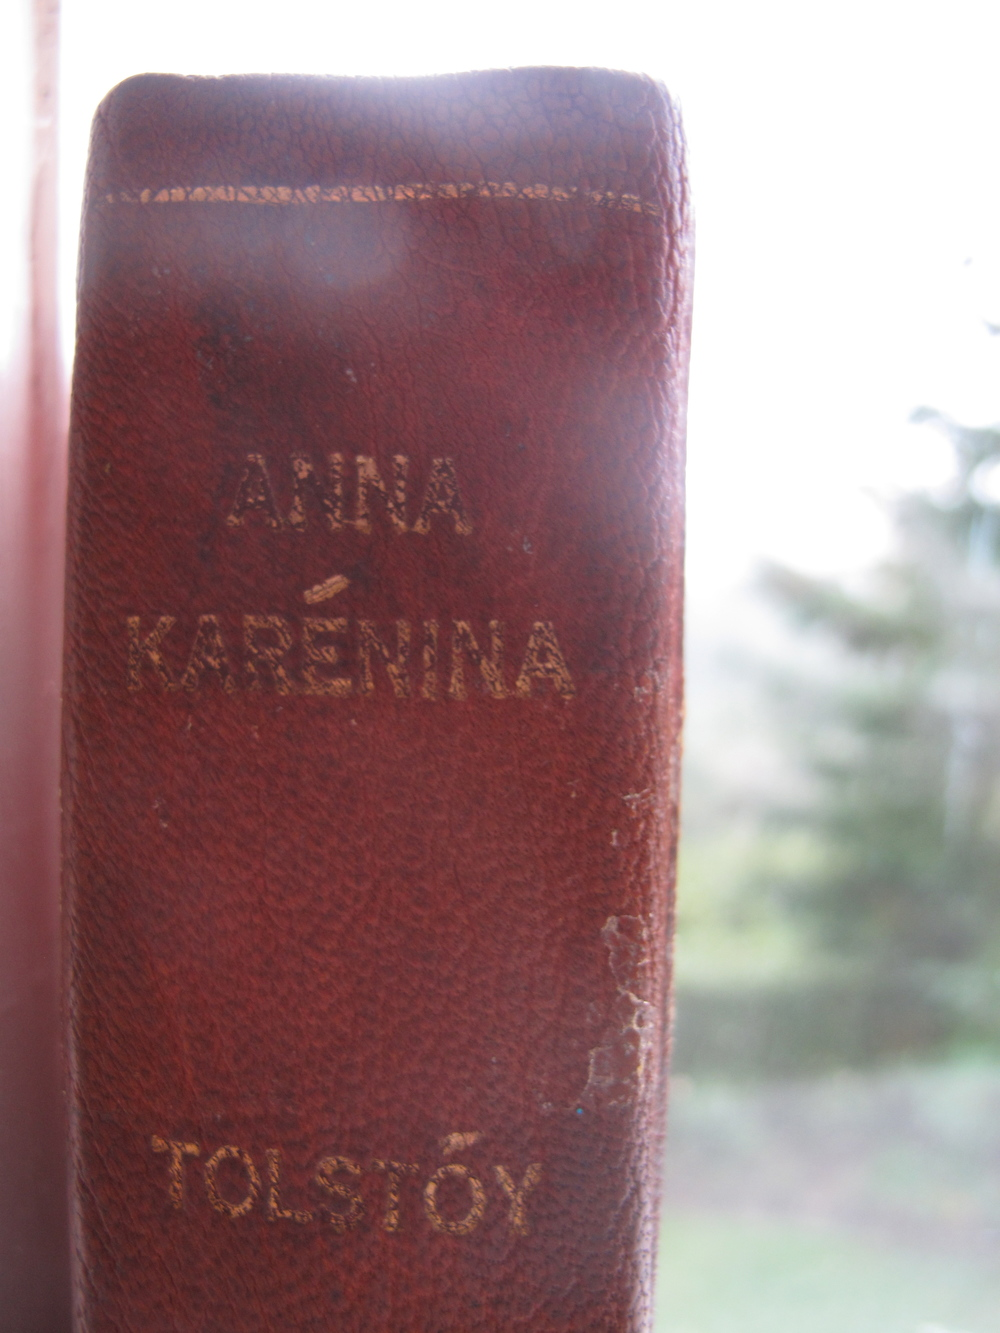 Anna Karenina thoughts on the book